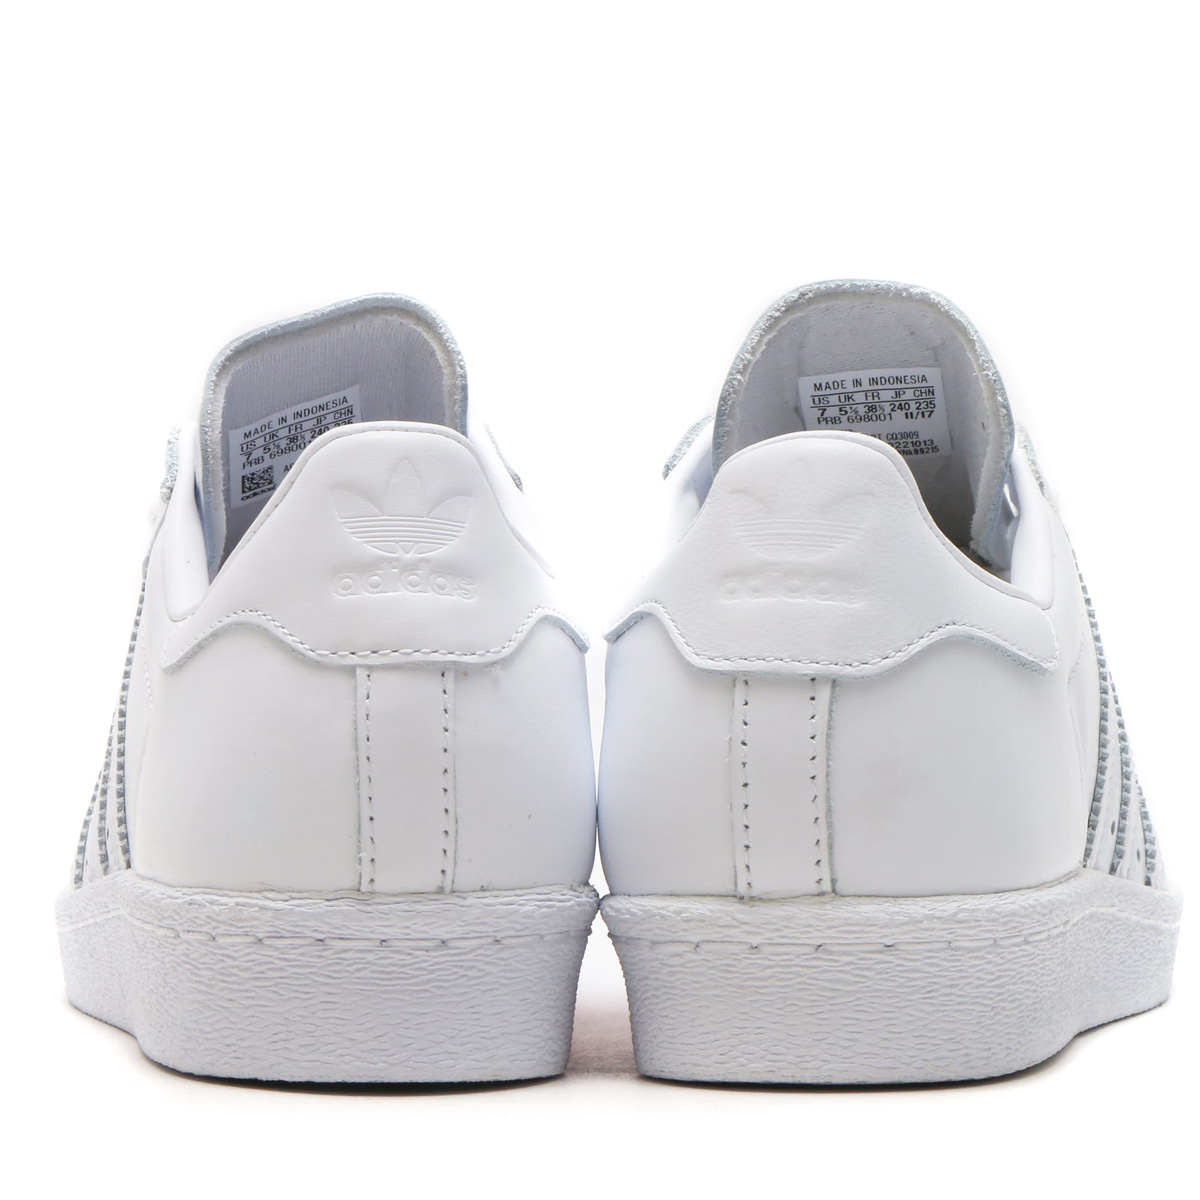 separation shoes 10d77 5d128 ... where can i buy adidas originals superstar 80s hh w adidas originals superstar  80s hh w